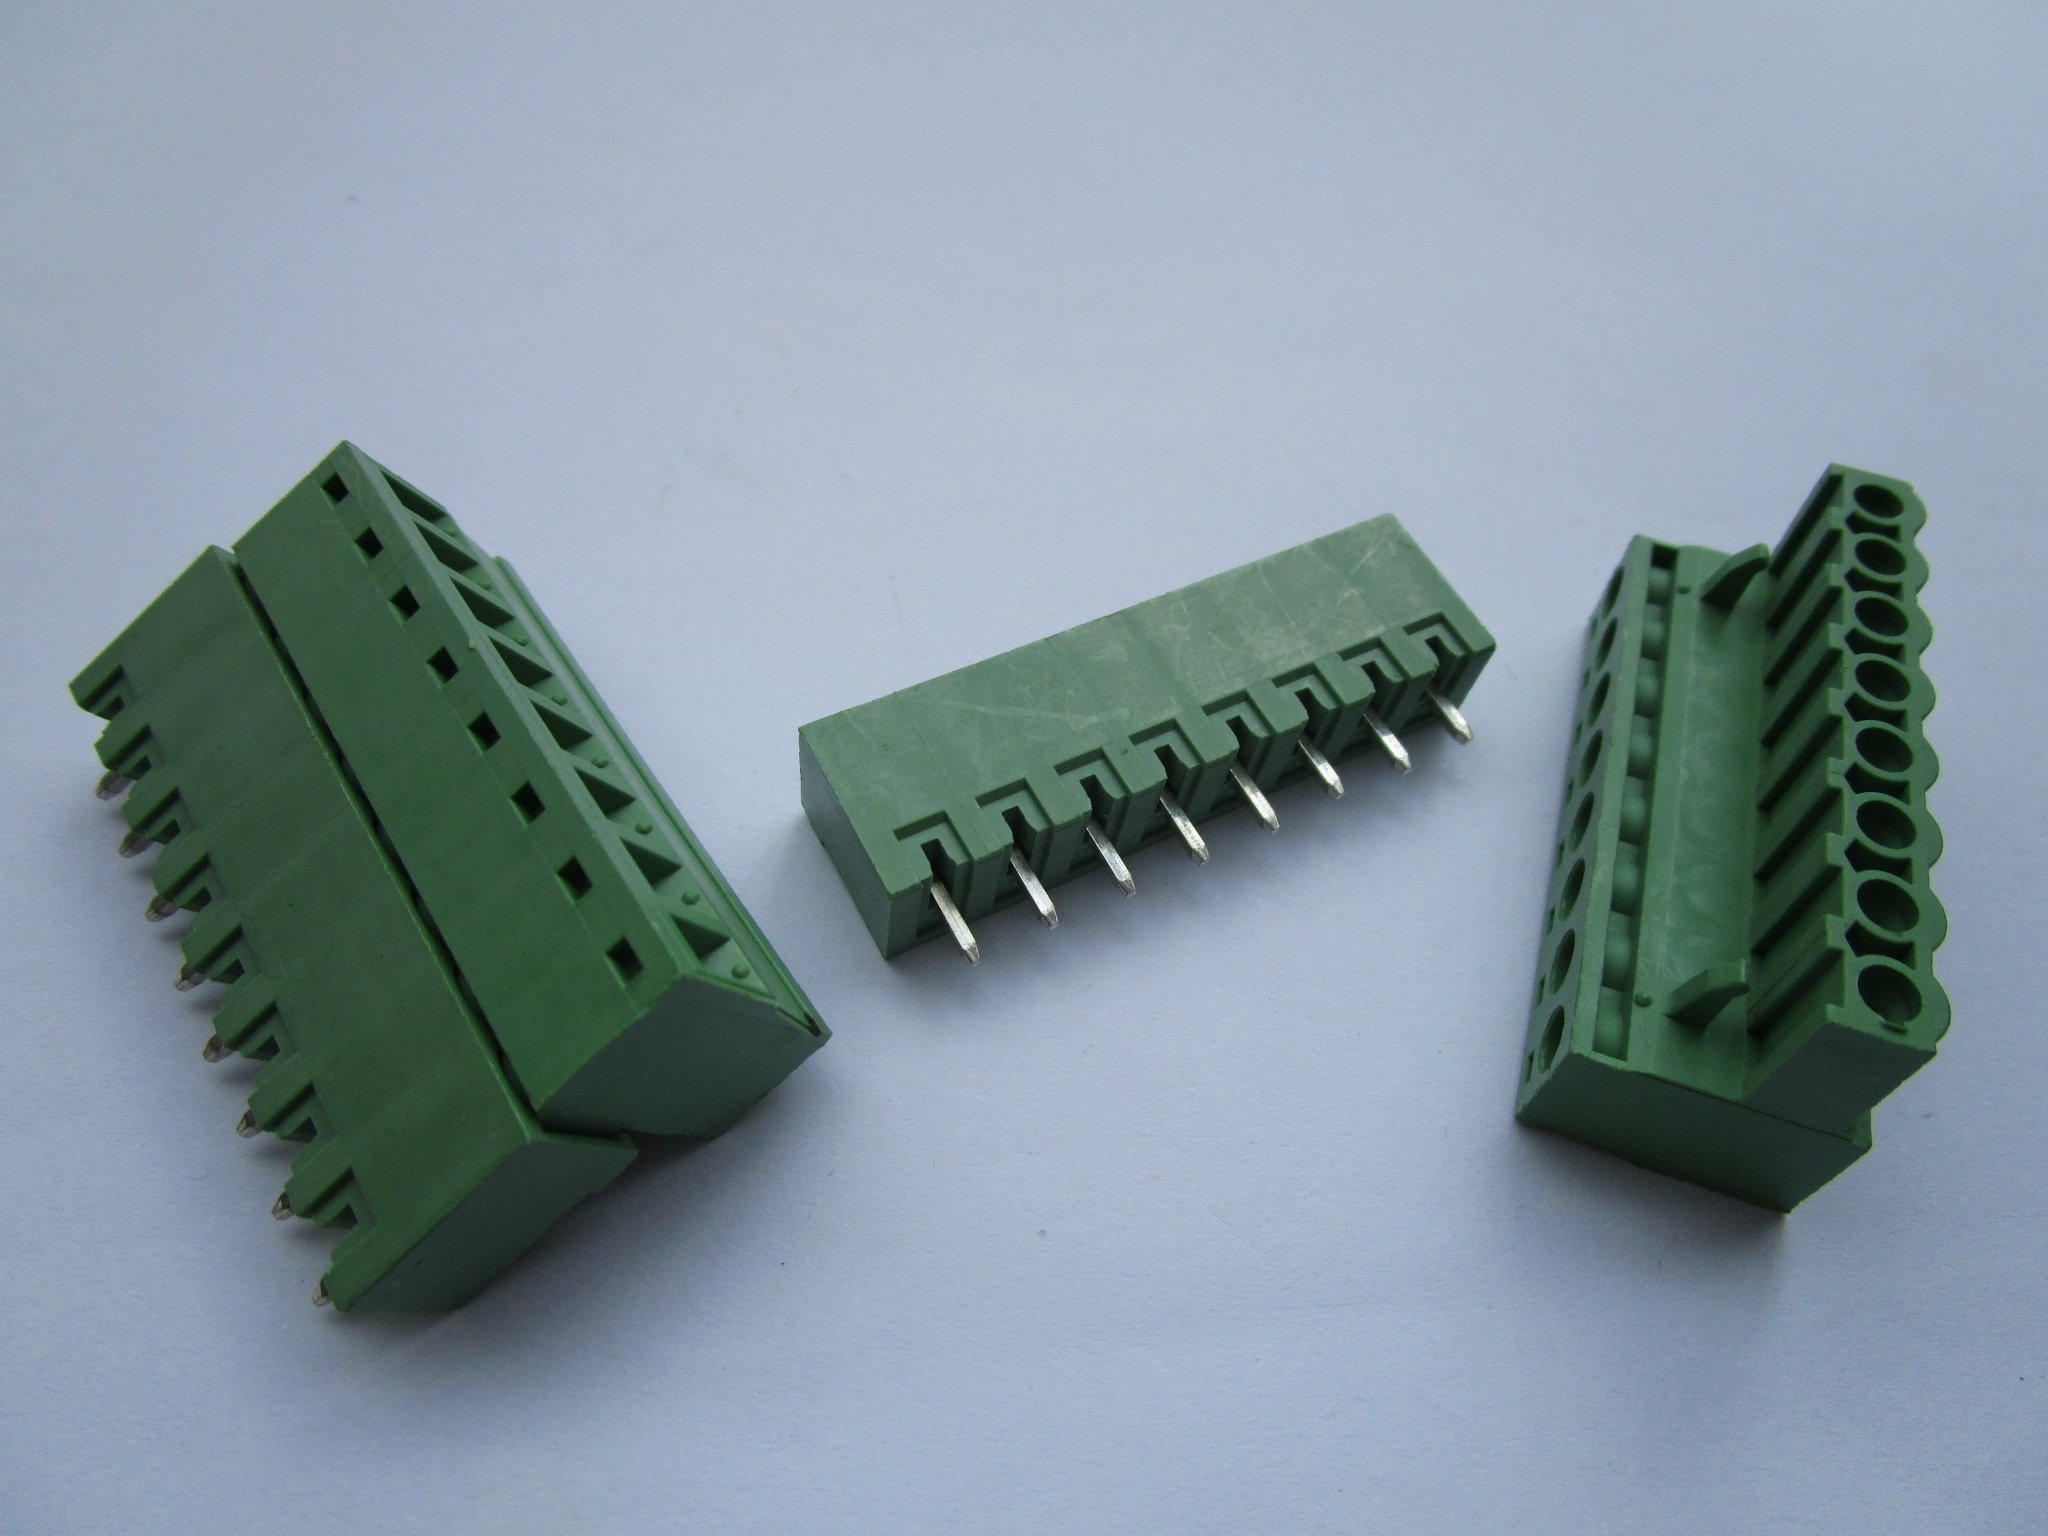 120 Pcs Close Straight 8 Pin/way Pitch 5.08mm Screw Terminal Block Connector Green Color Pluggable Type with Straight Pin